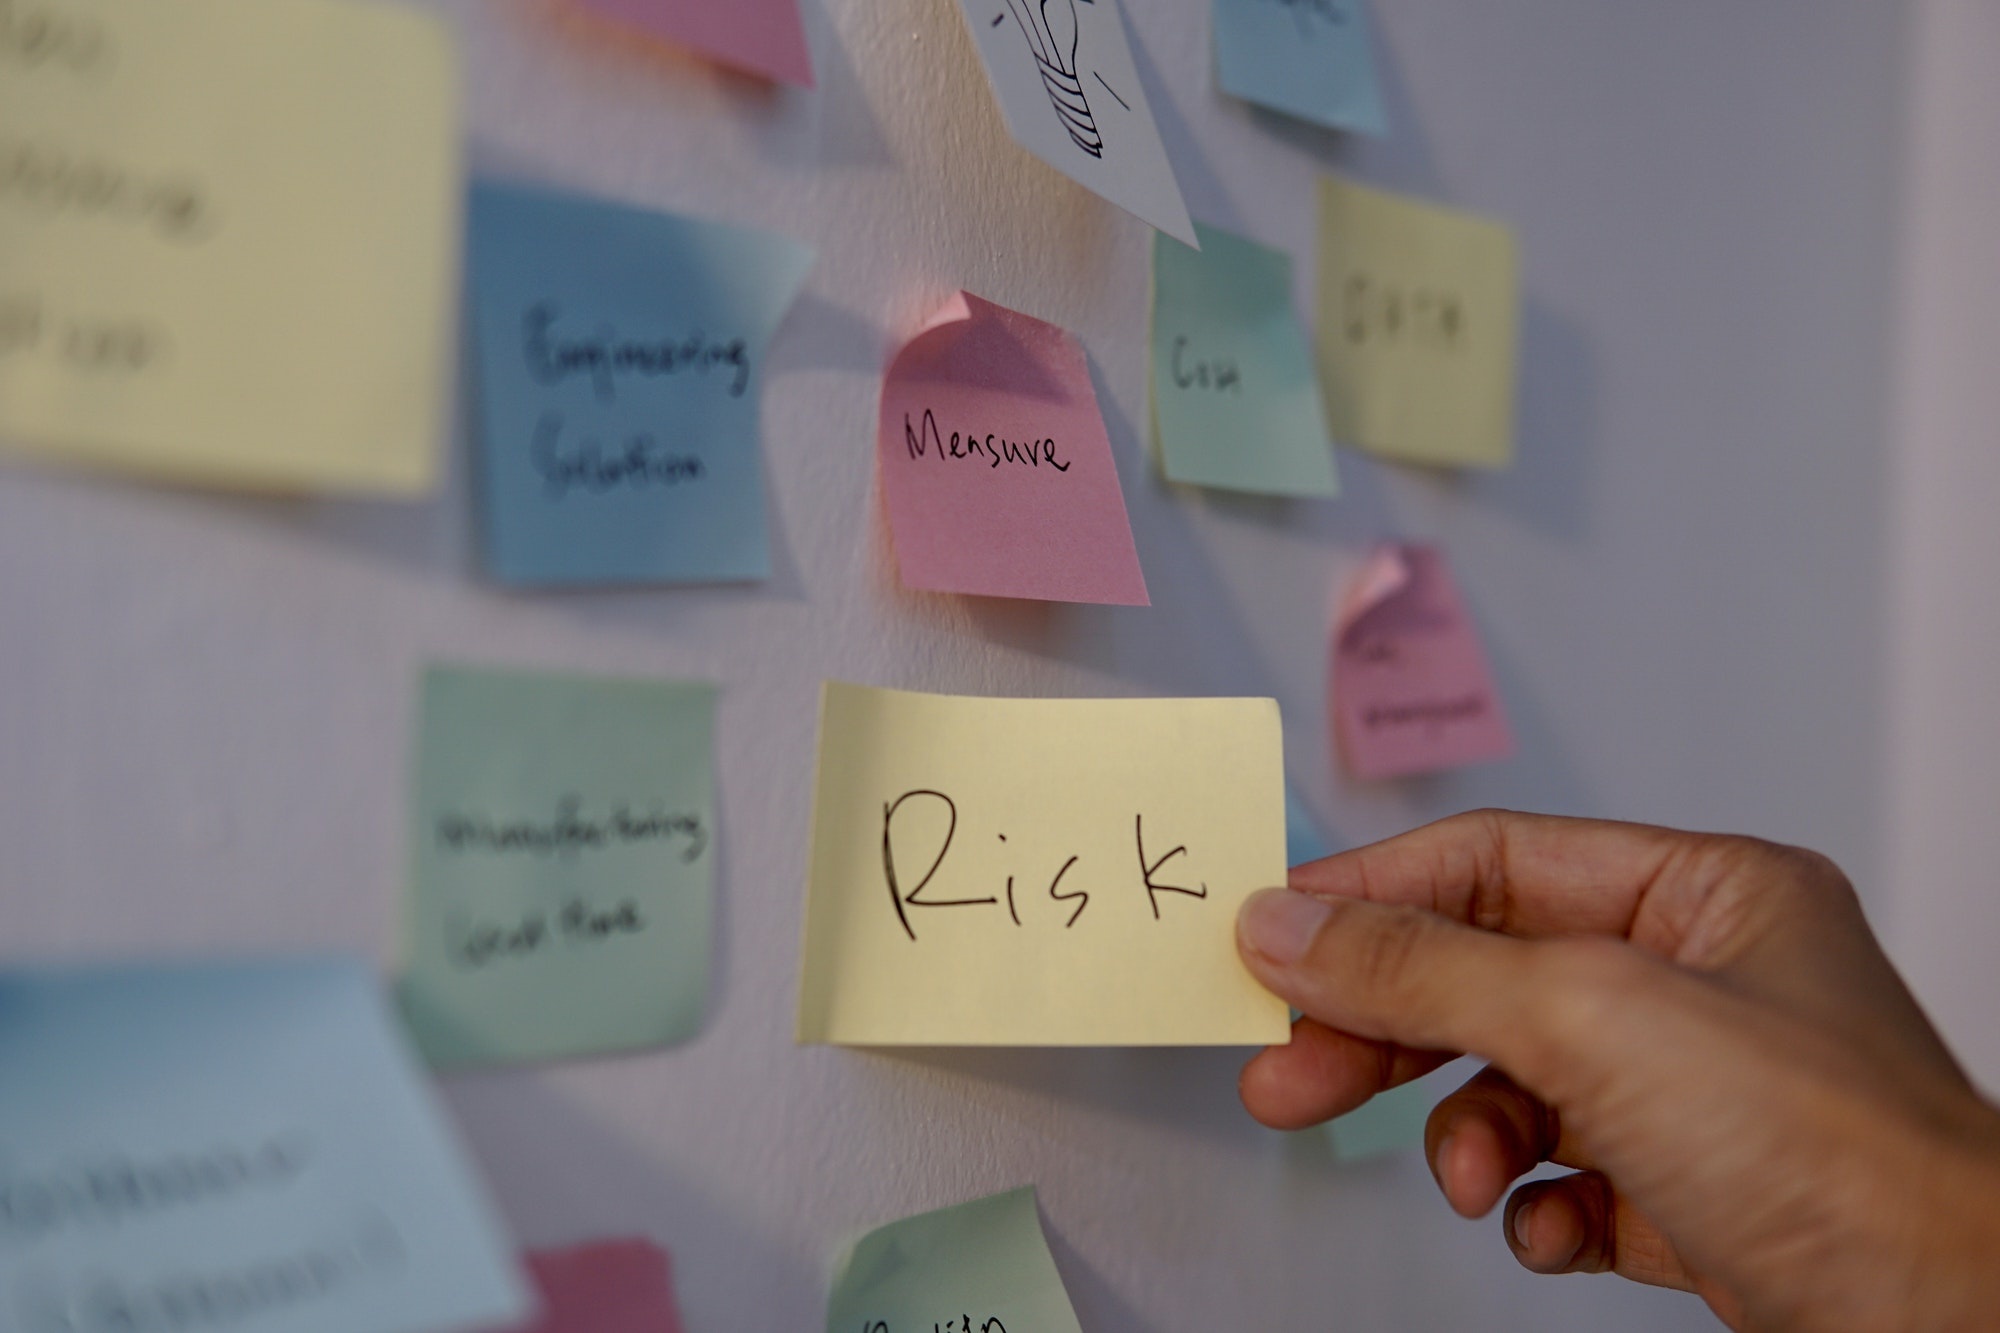 Brainstorming discussion in the office, sticky notes on the board, ideas, risk assessment